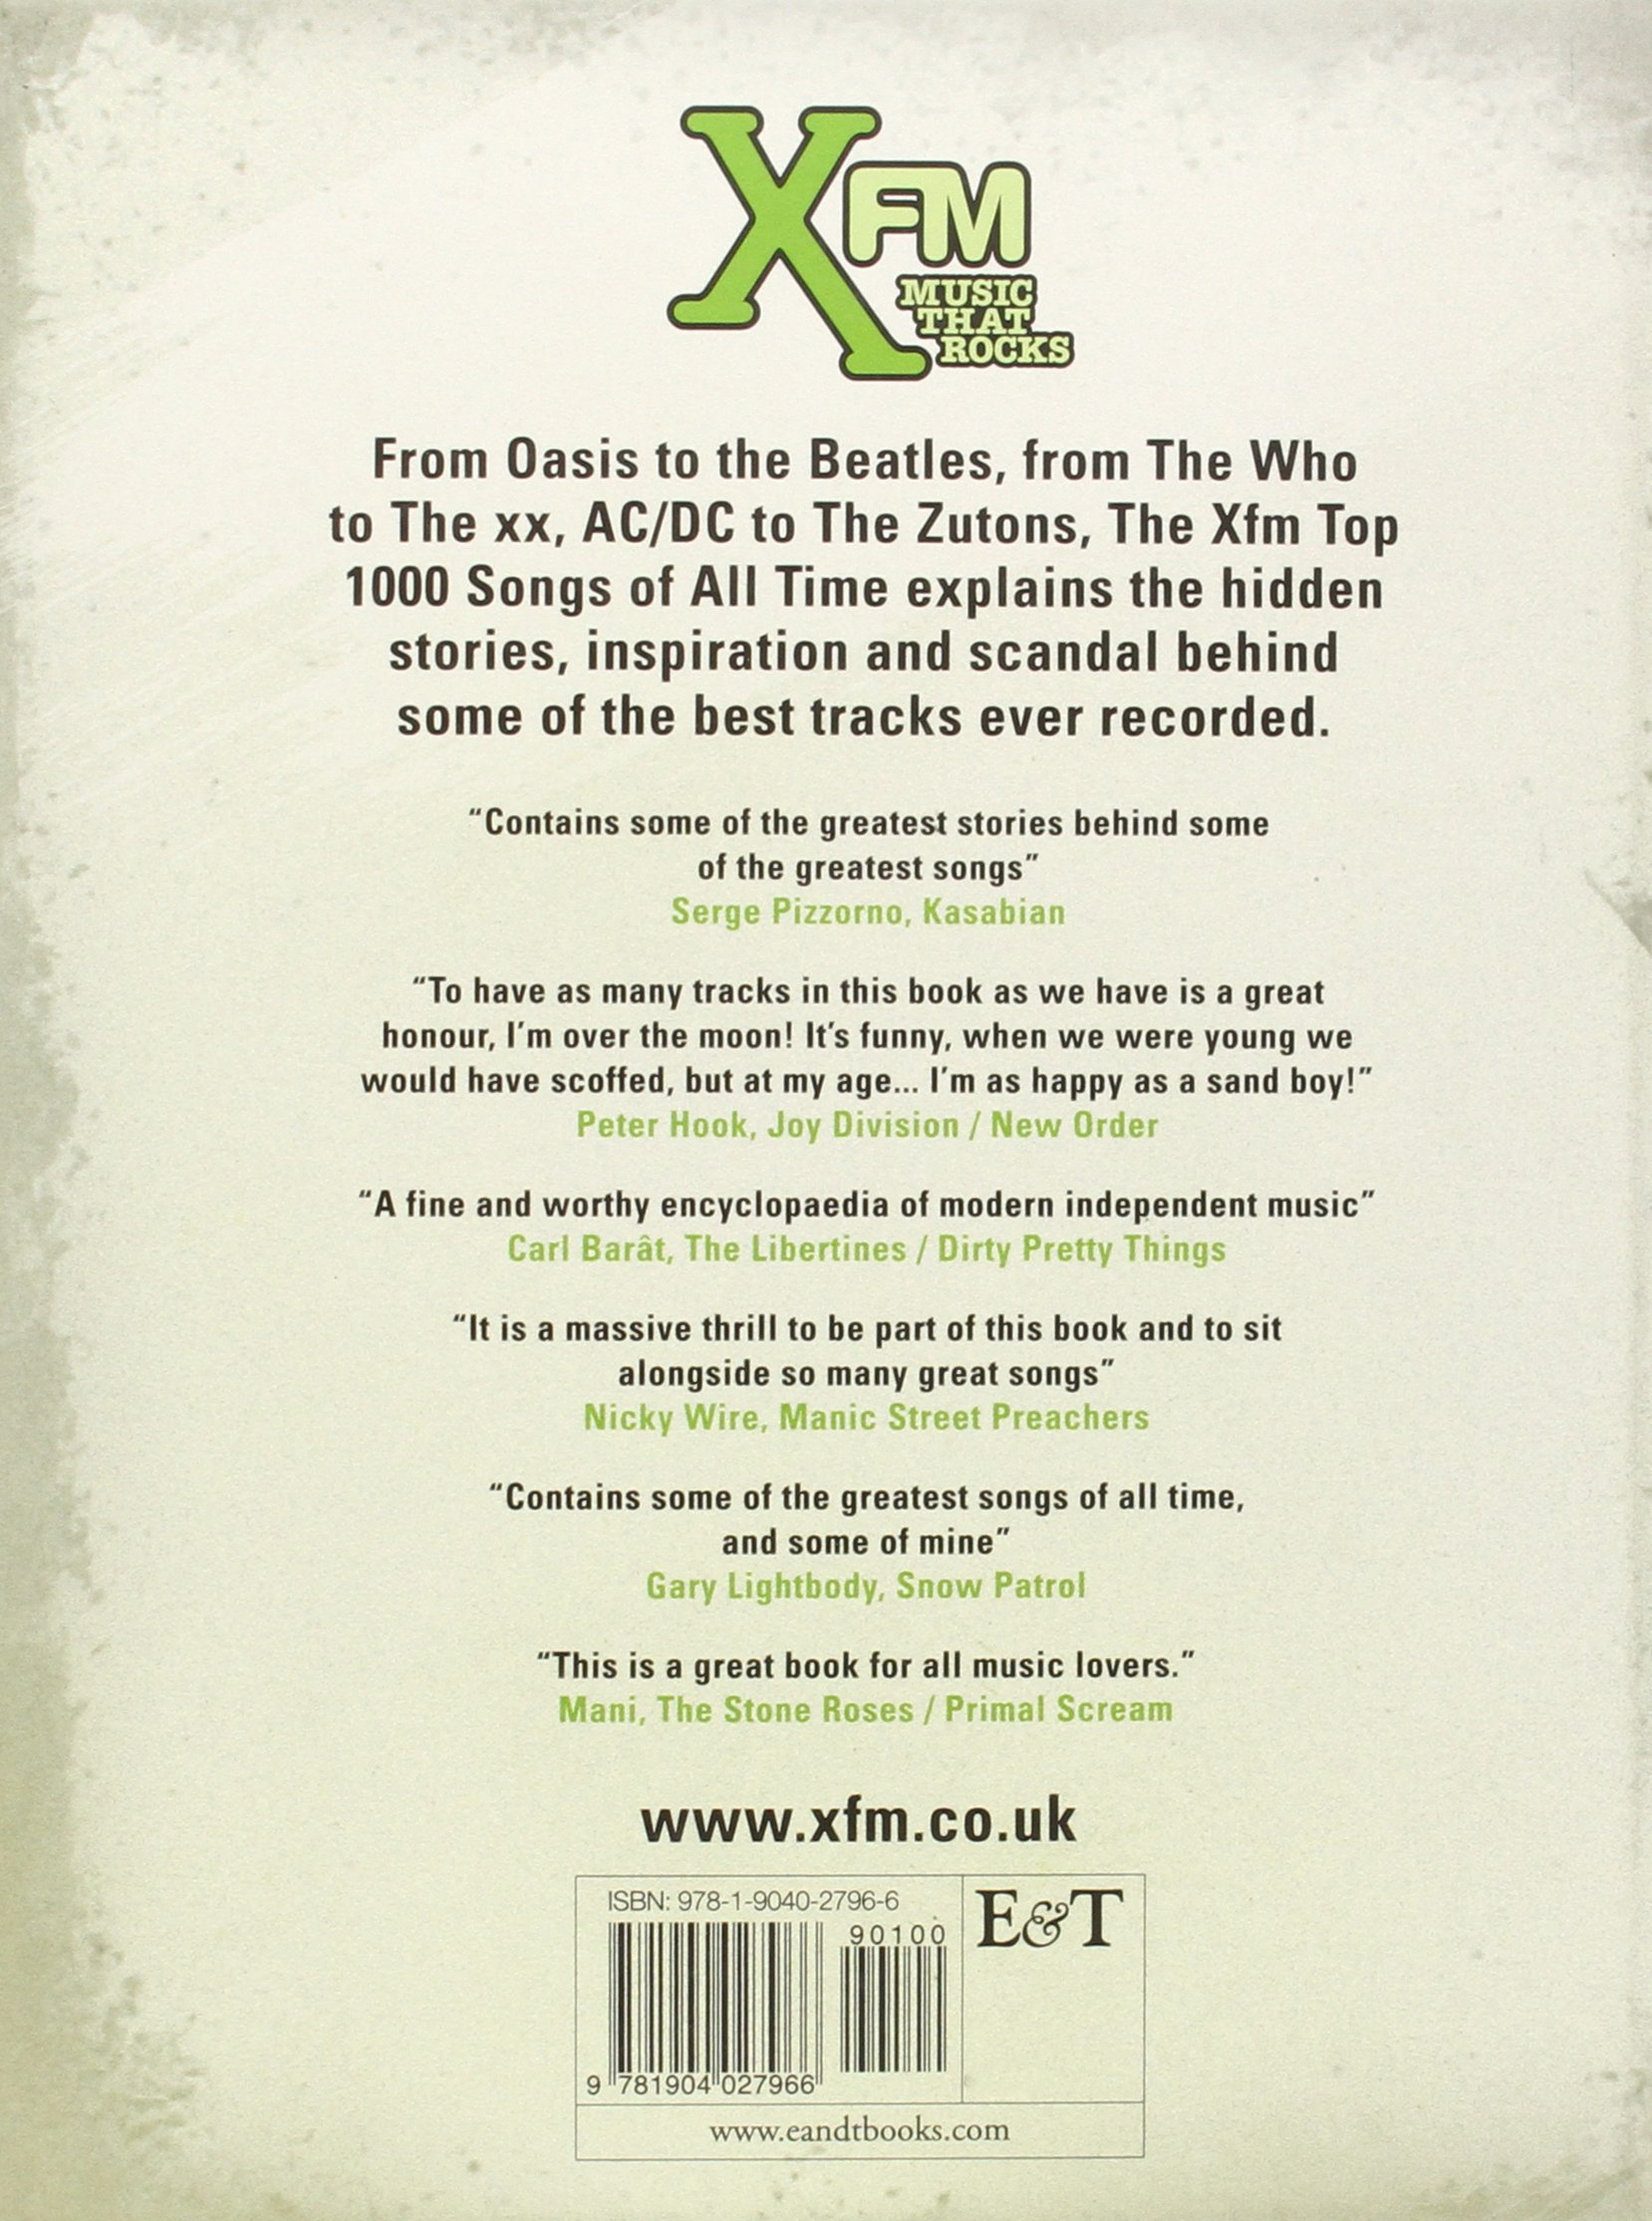 The Xfm Top 1000 Songs of All Time: Amazon co uk: Xfm: 9781904027966